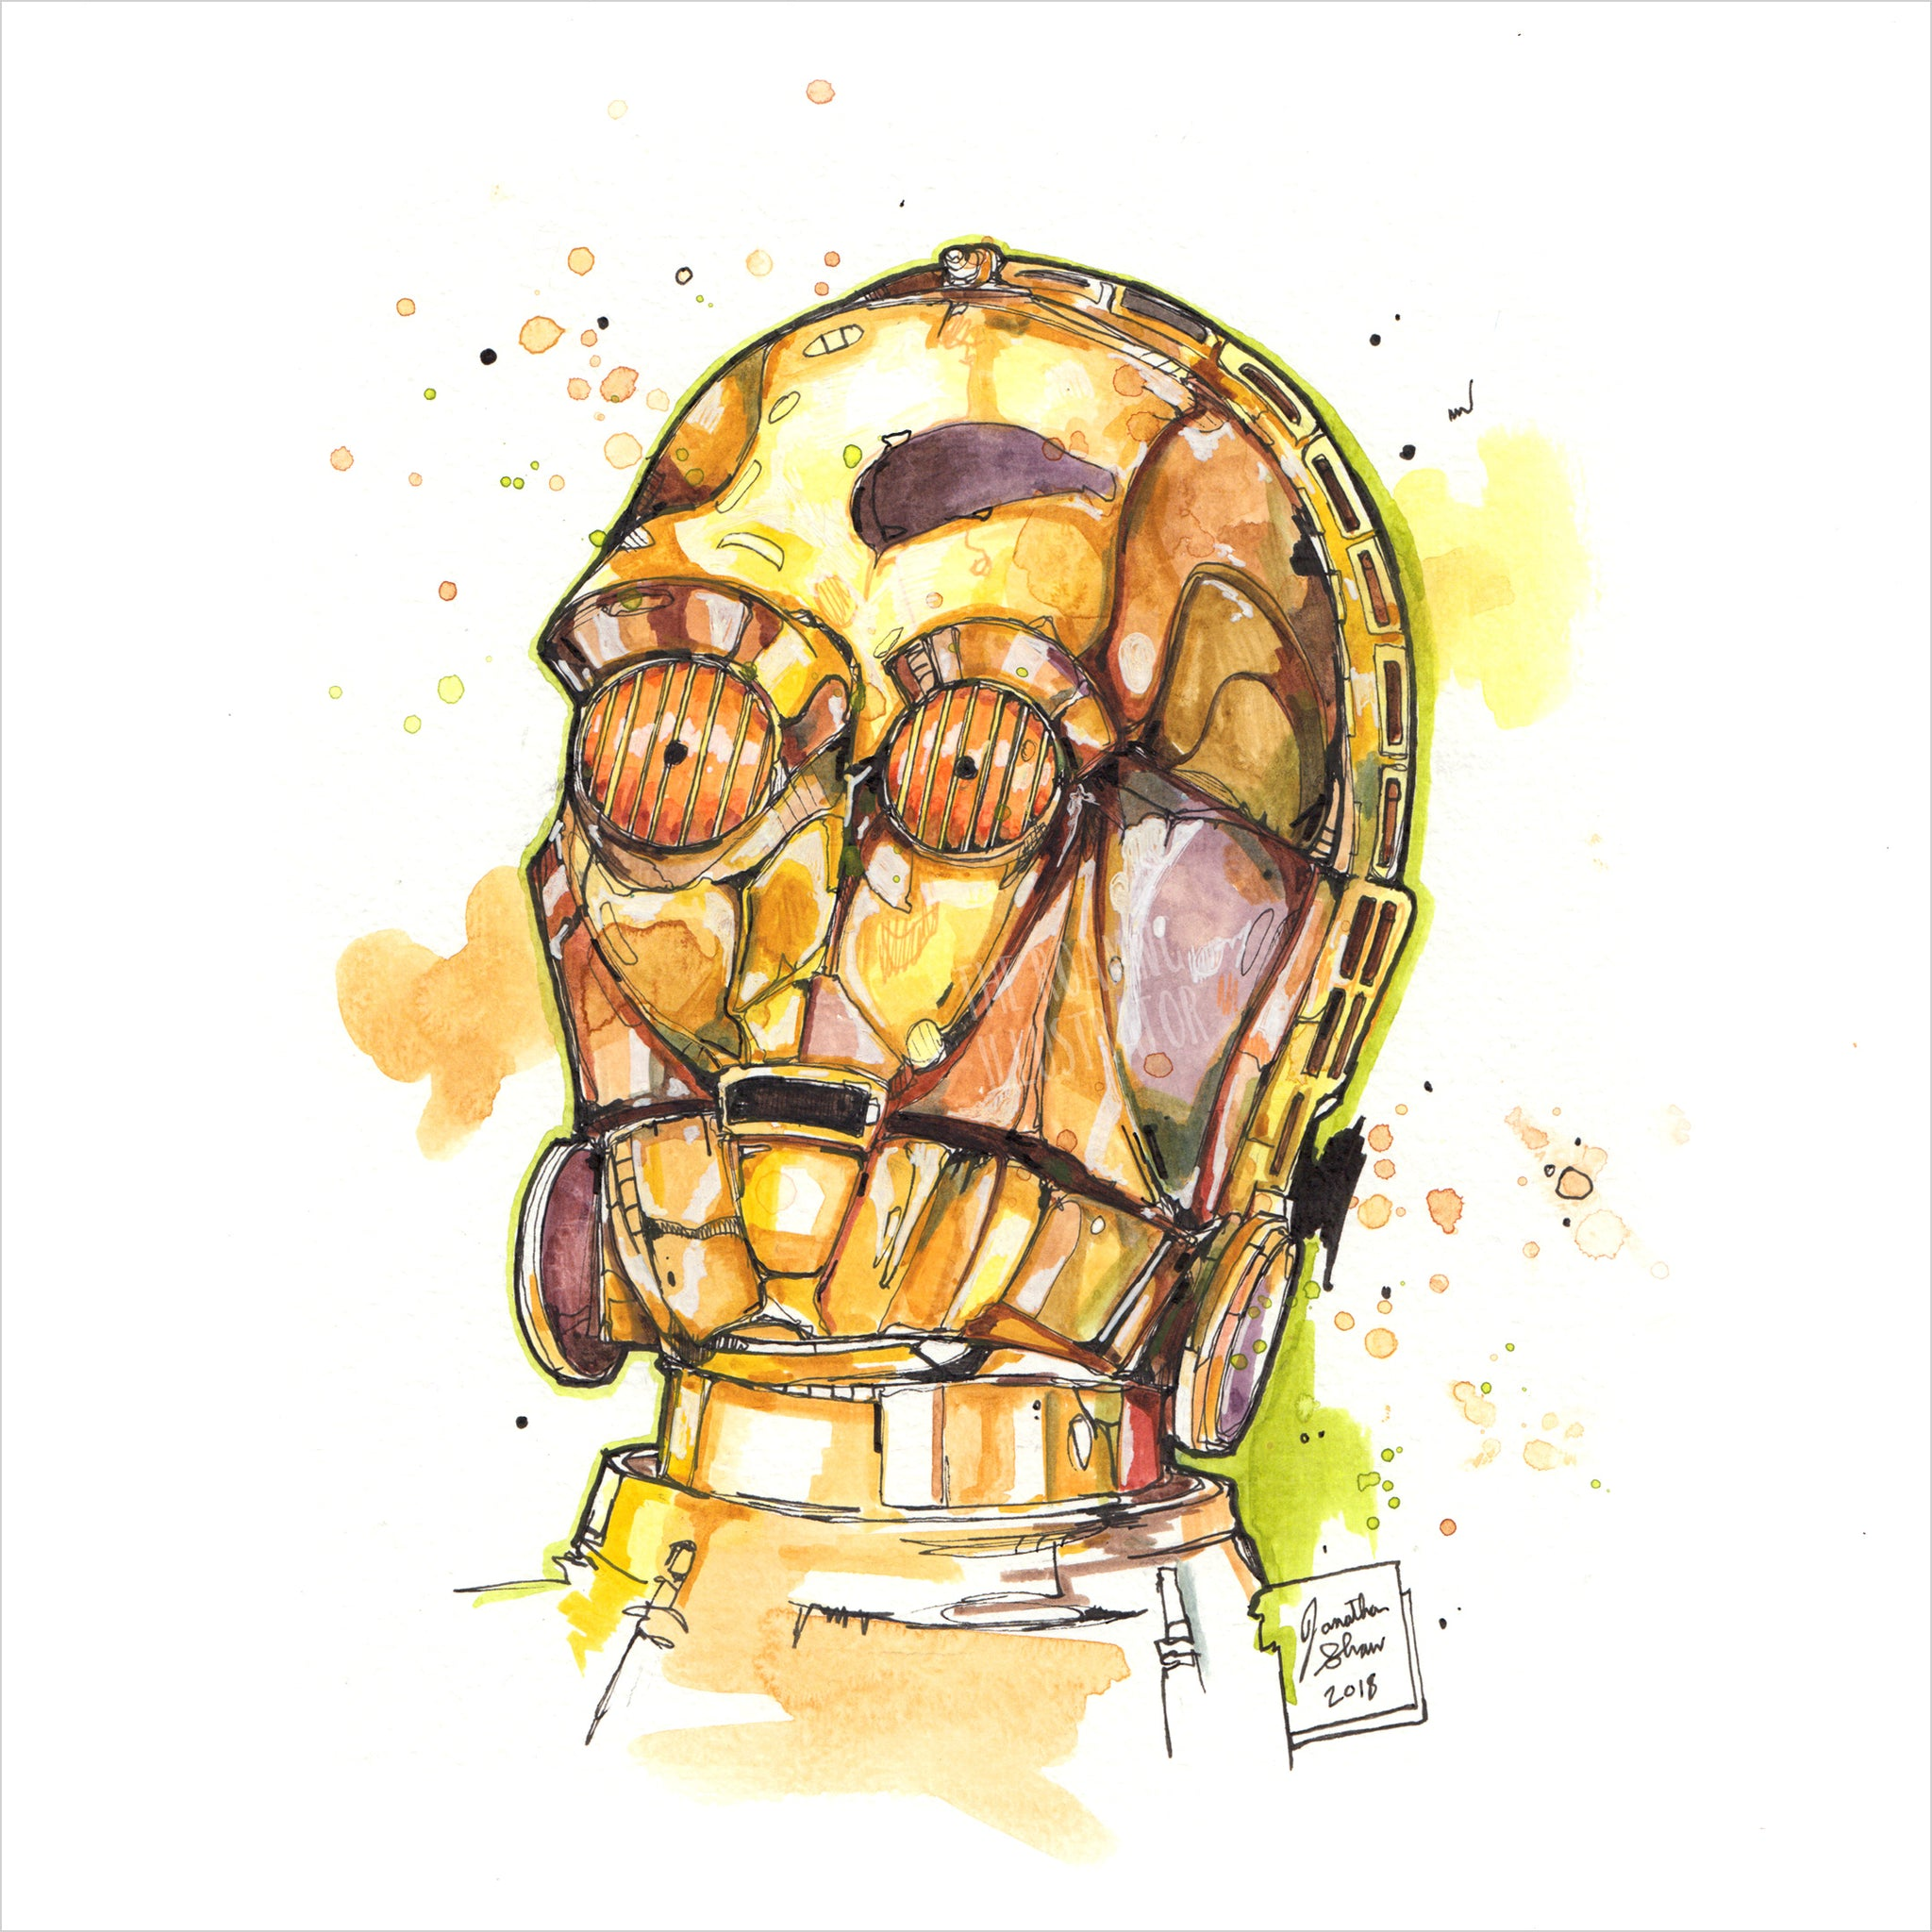 """C3PO"" - Original 8x10 Illustration (SOLD)"